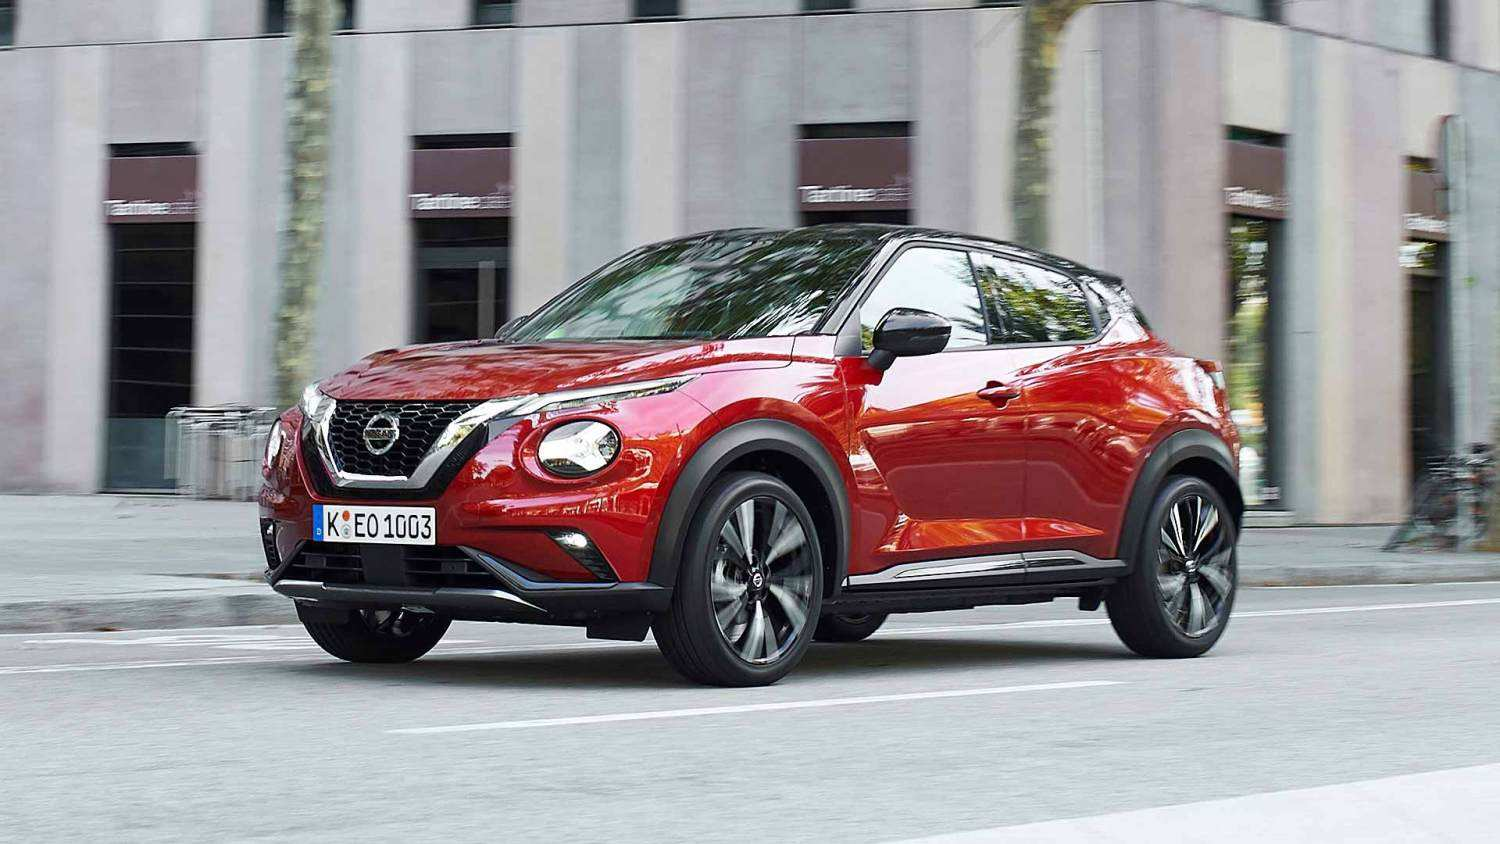 22 The Best Nissan Juke 2020 Dimensions Images